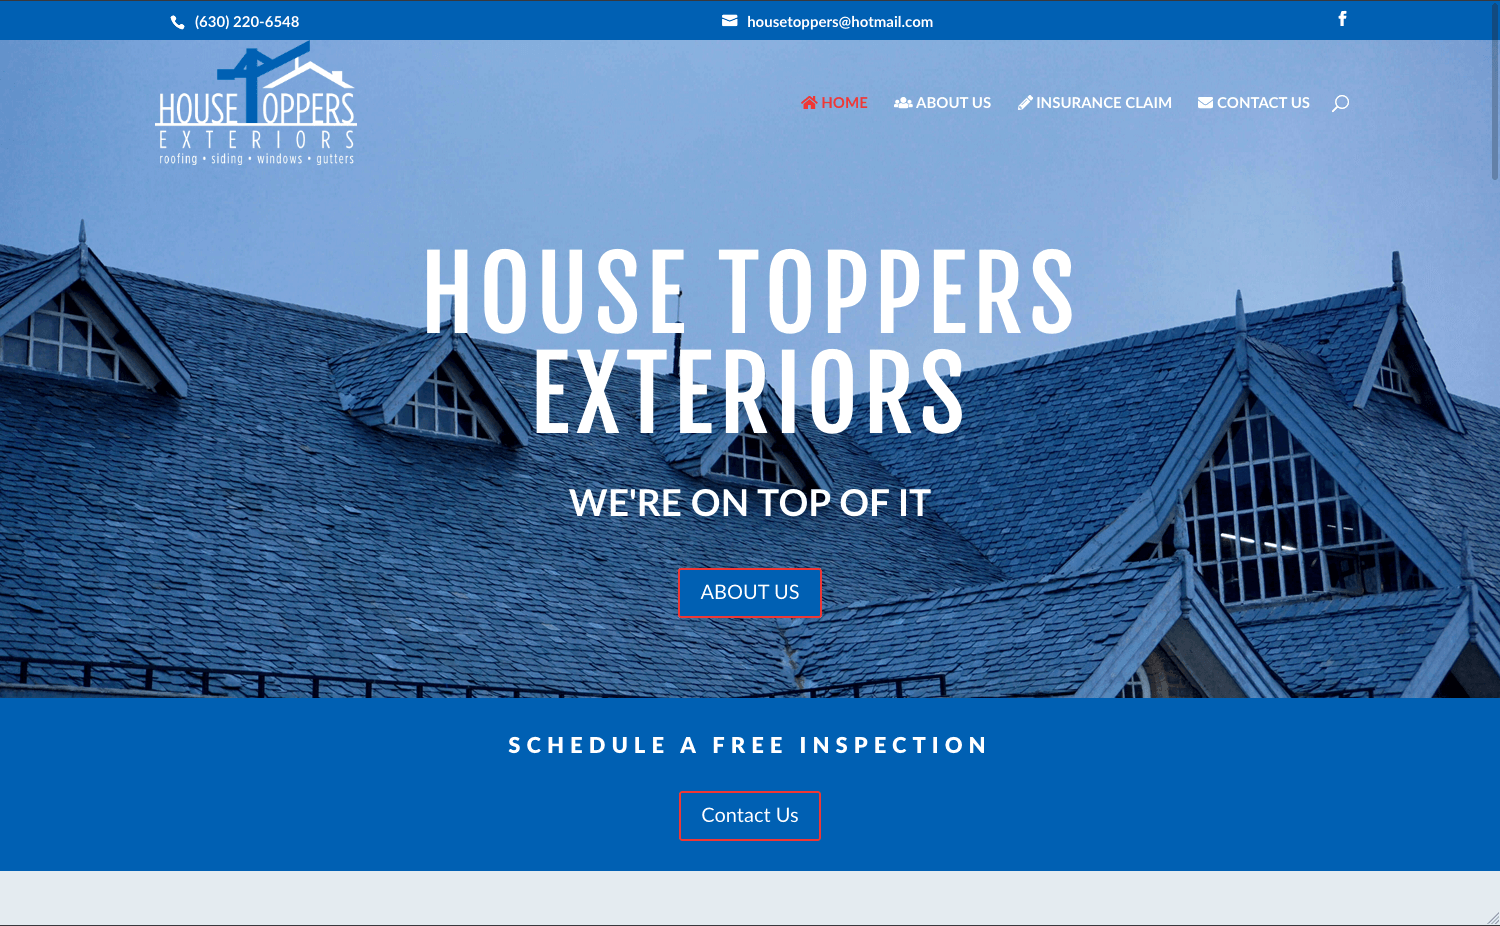 House Toppers Exteriors